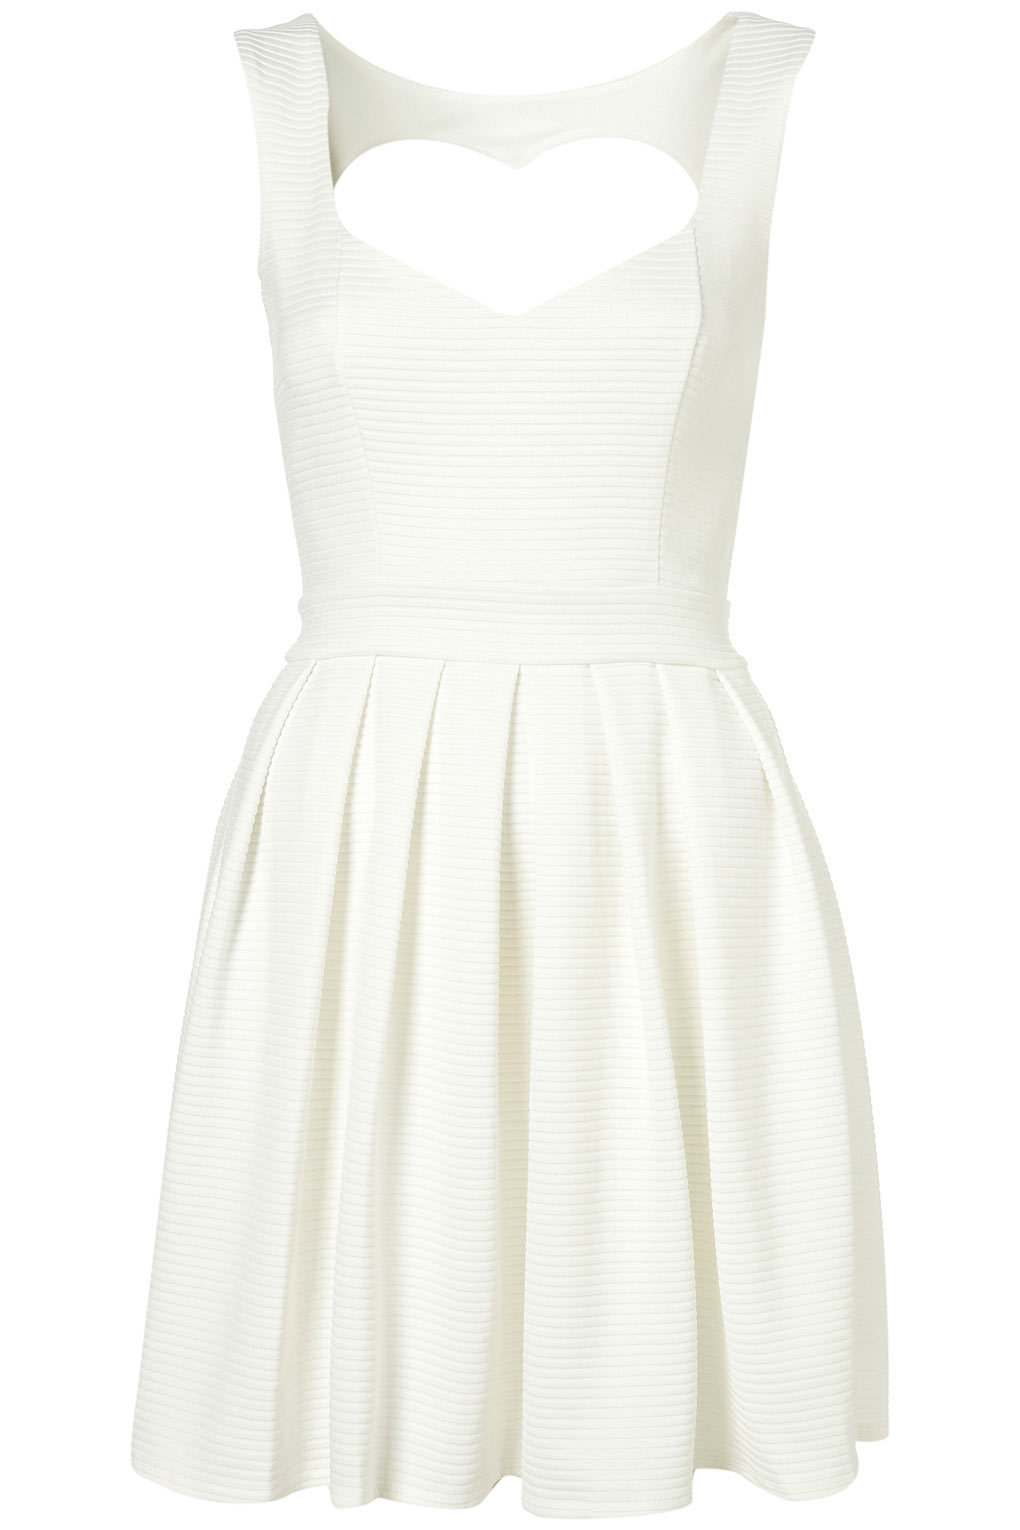 ribbed ivory LWD wedding reception frock topshop